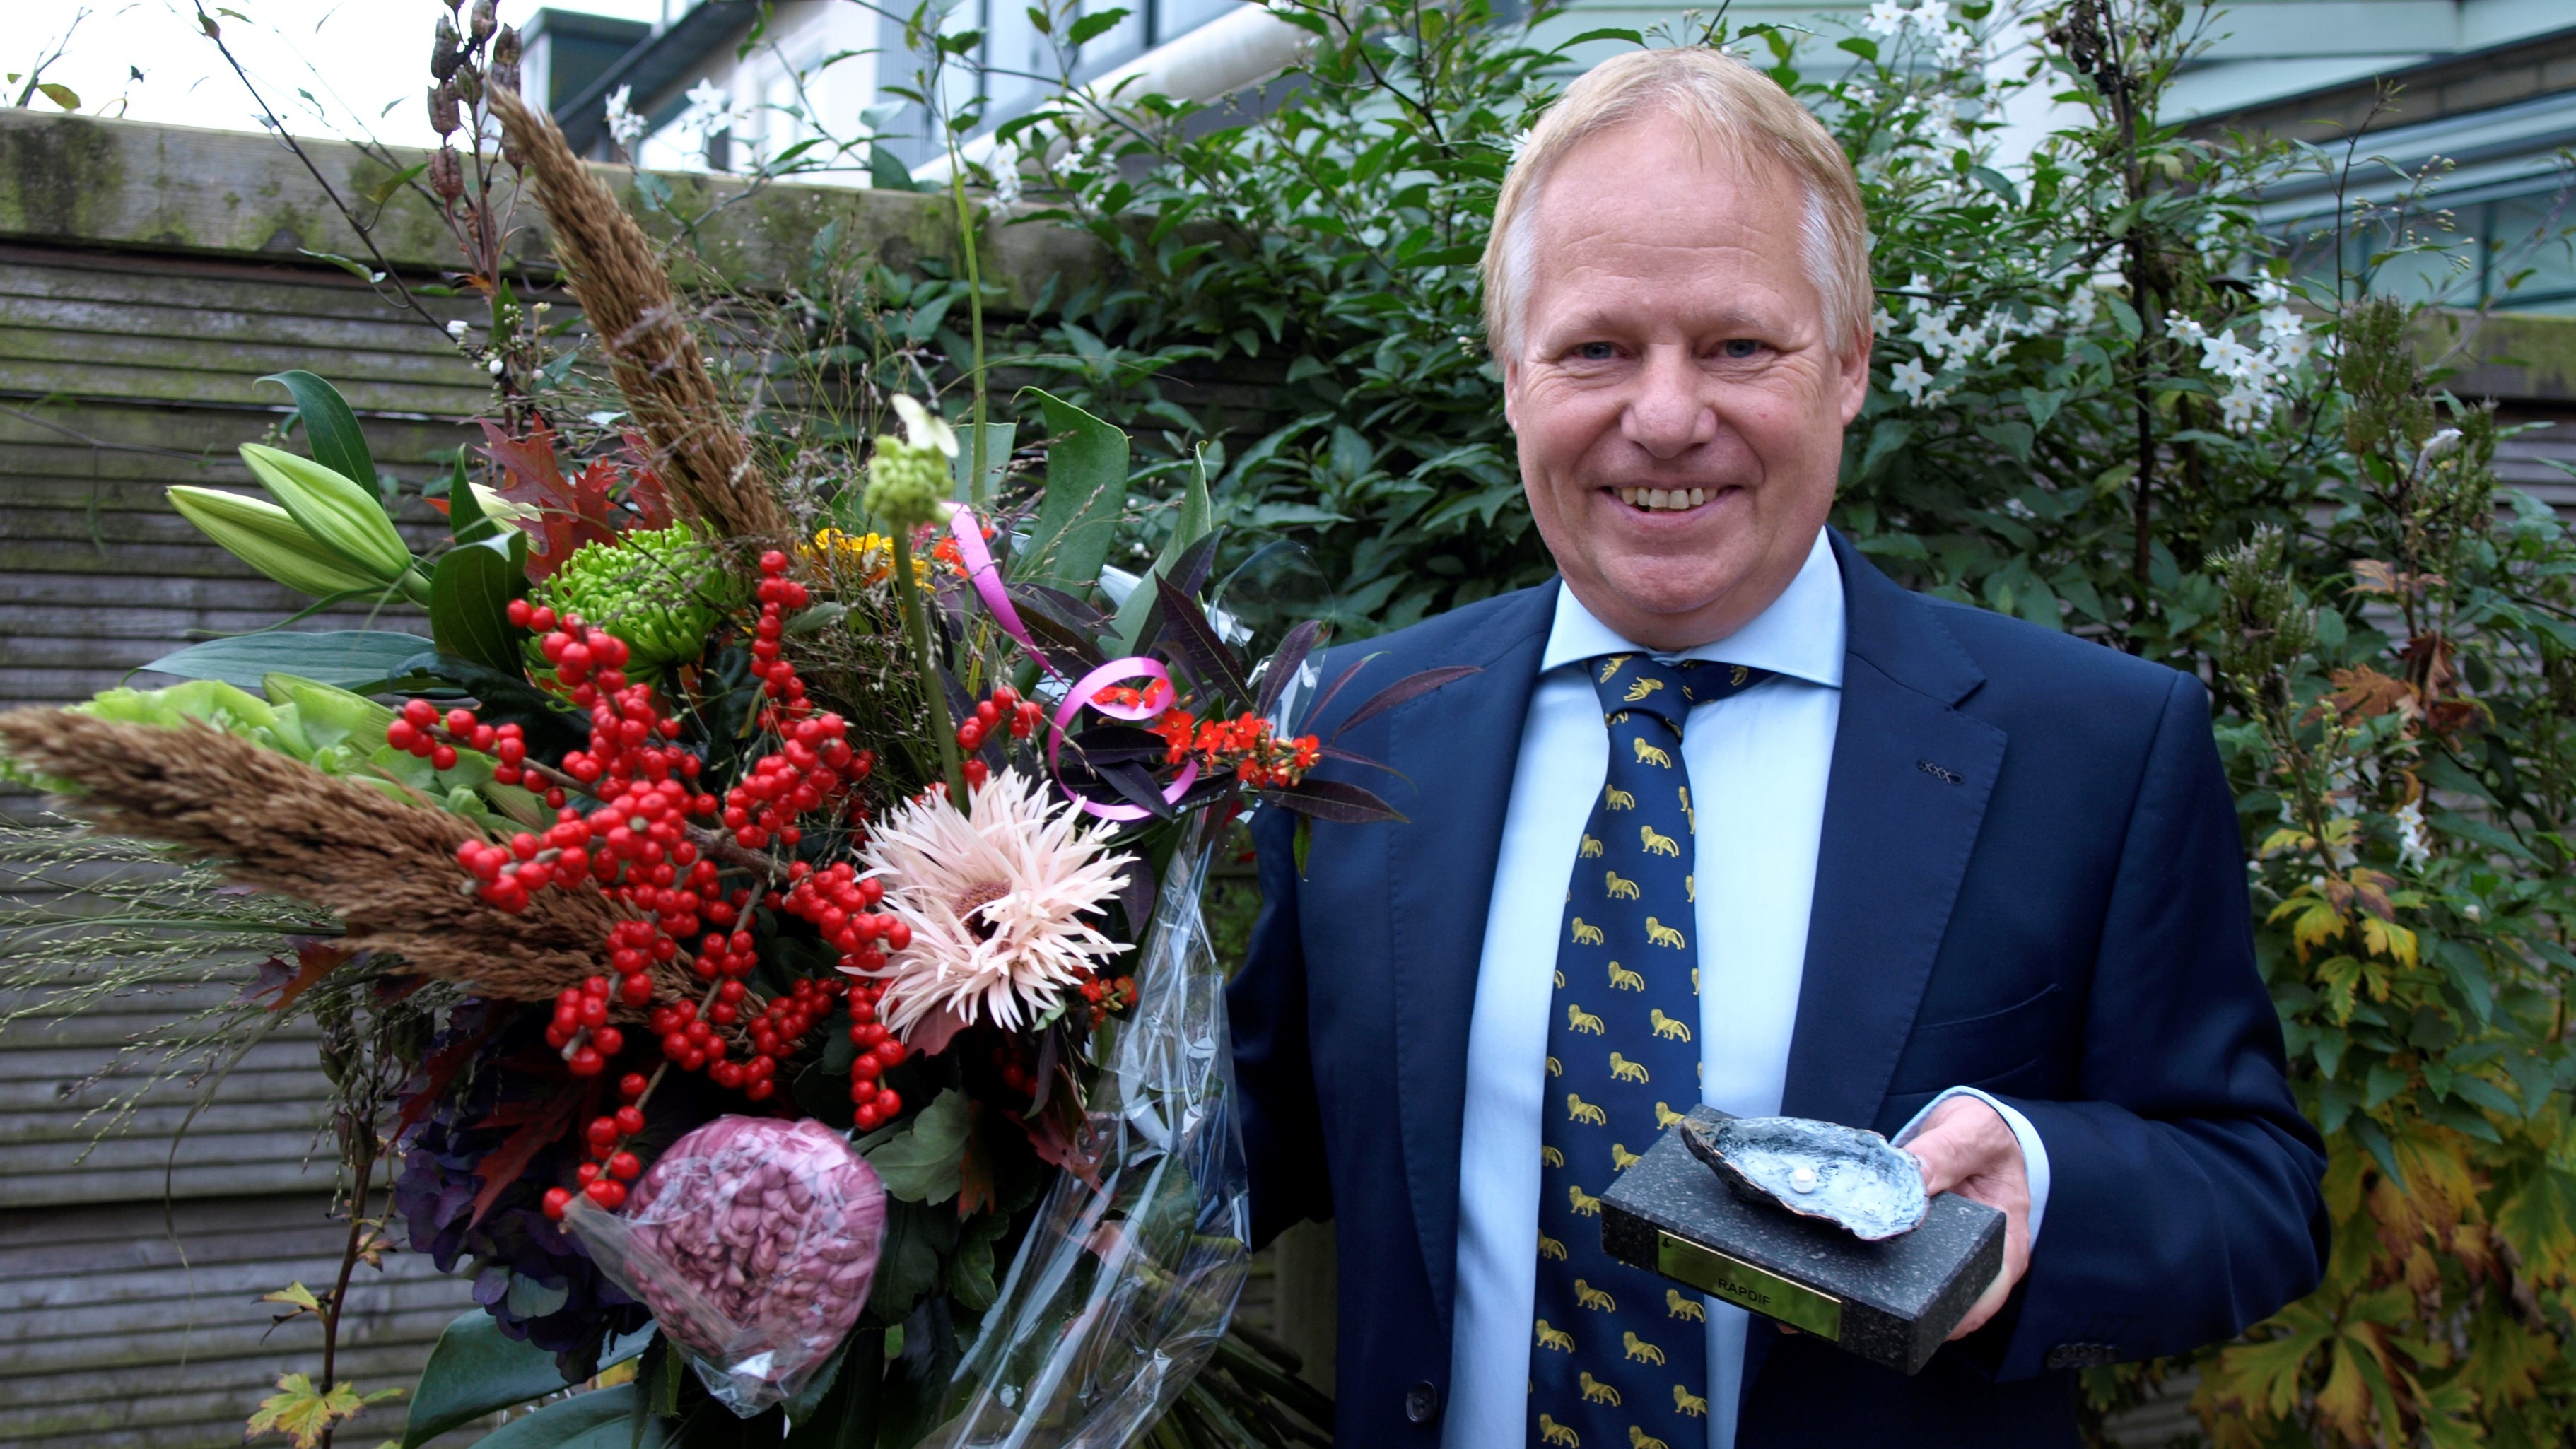 Henk Schallig happy in garden with award